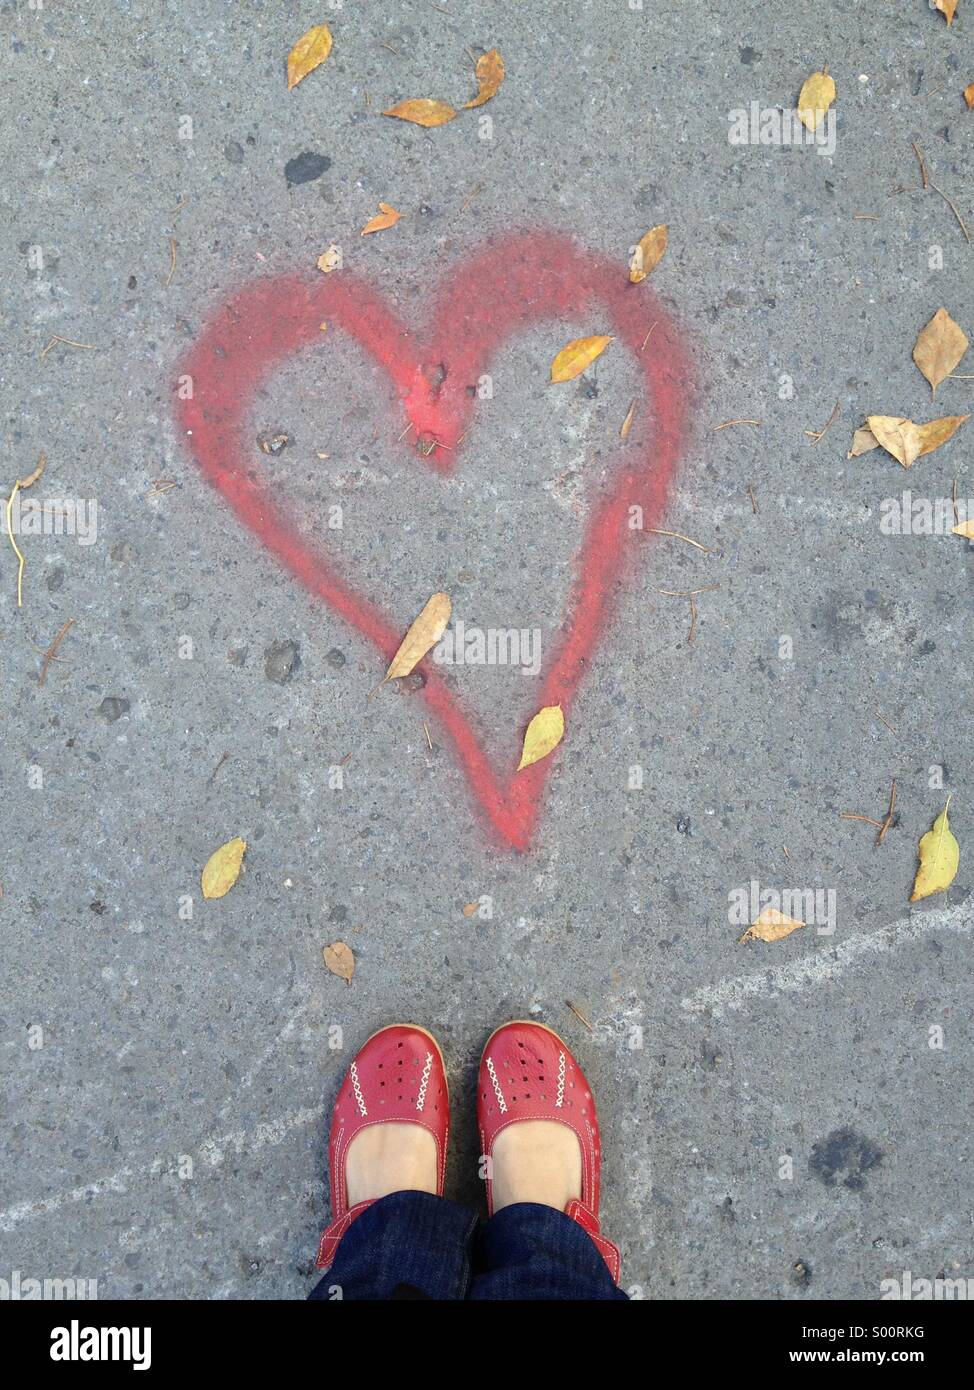 Red shoes and heart - Stock Image